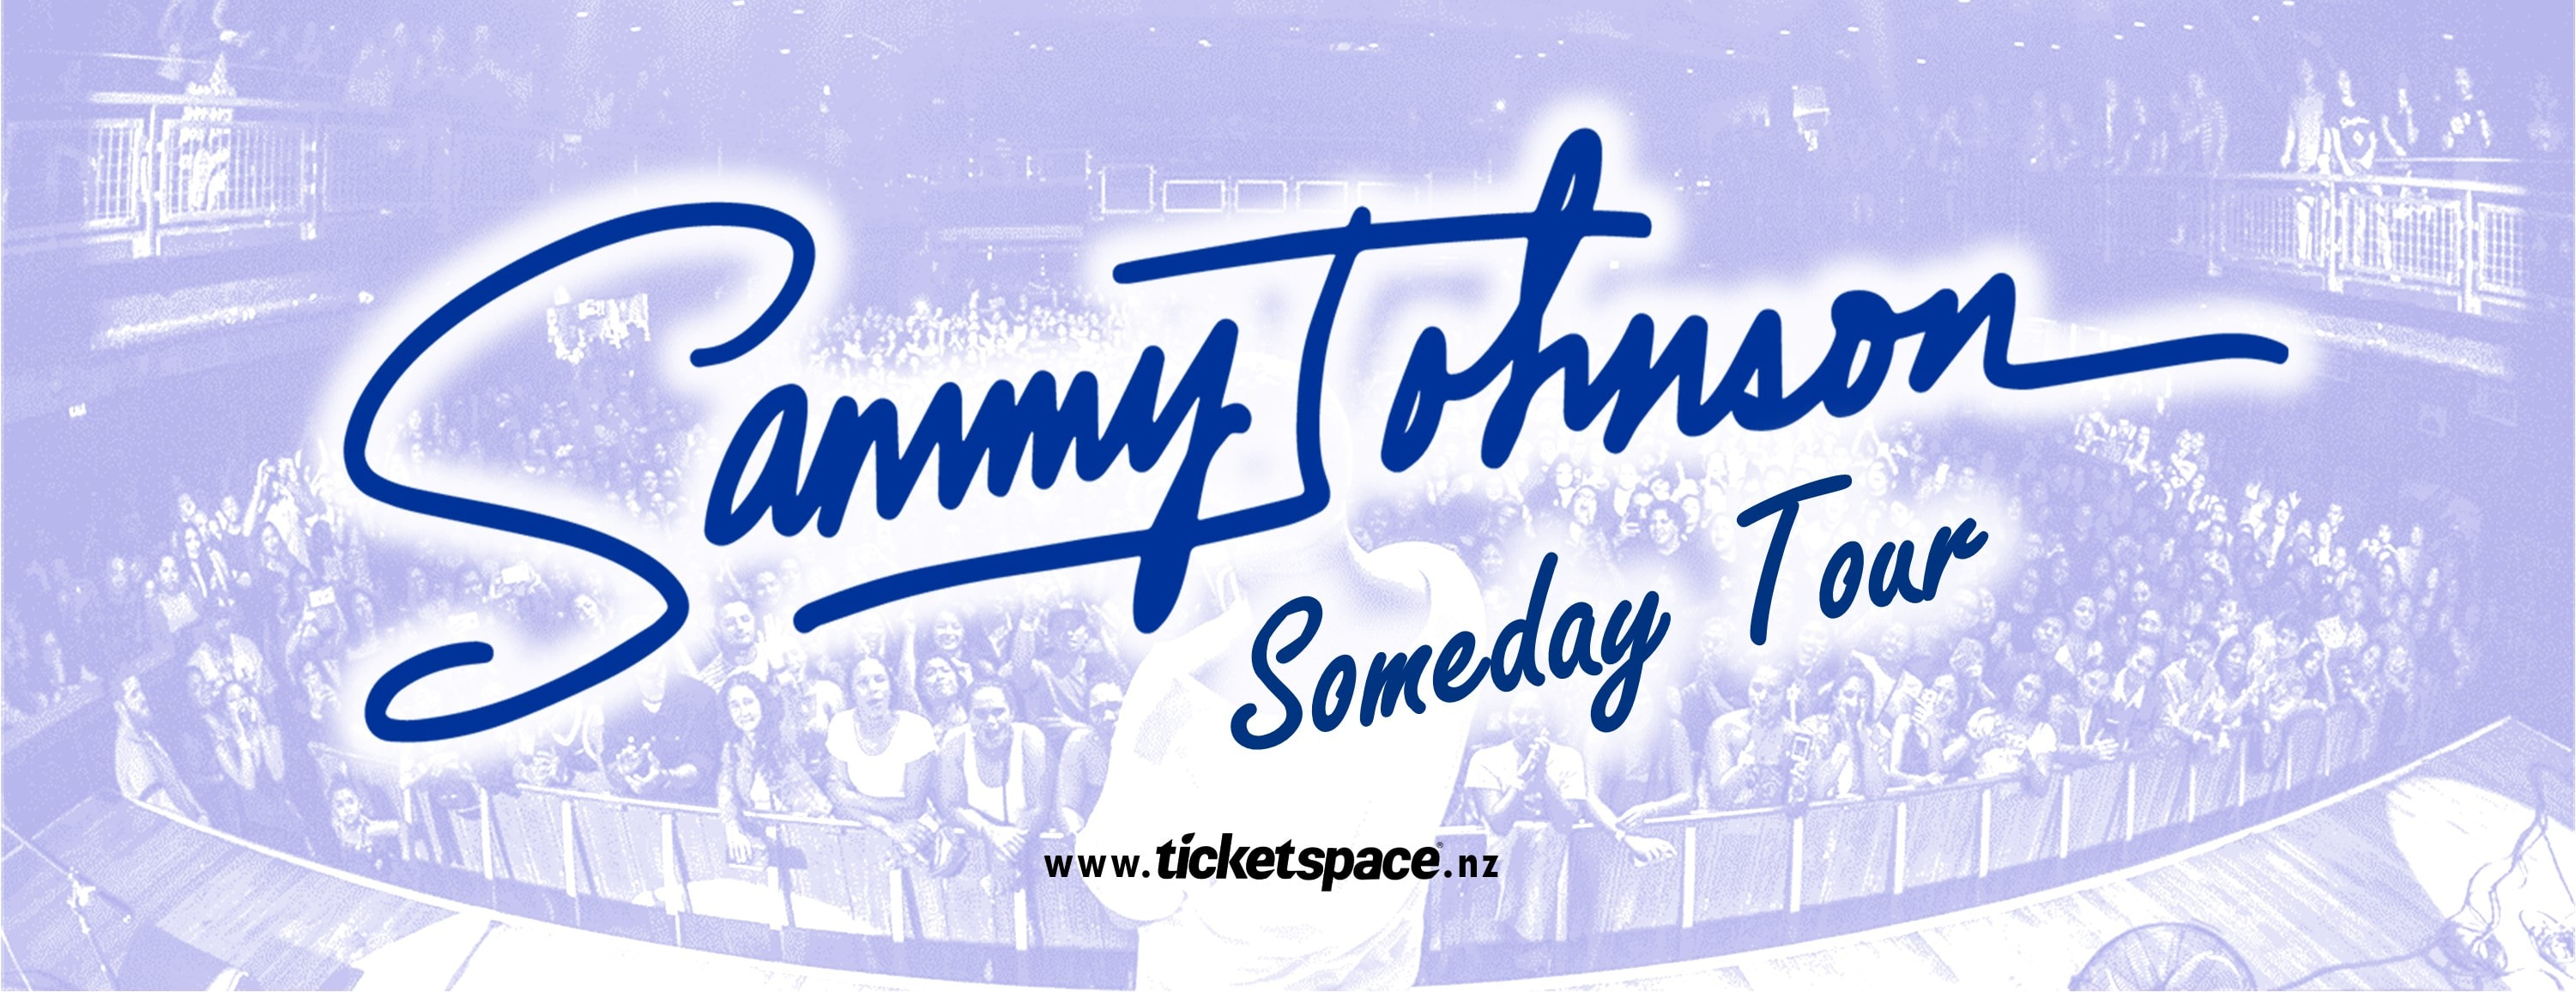 Tickets for SAMMY J 'Someday Tour' - Tauranga in Tauranga from Ticketspace